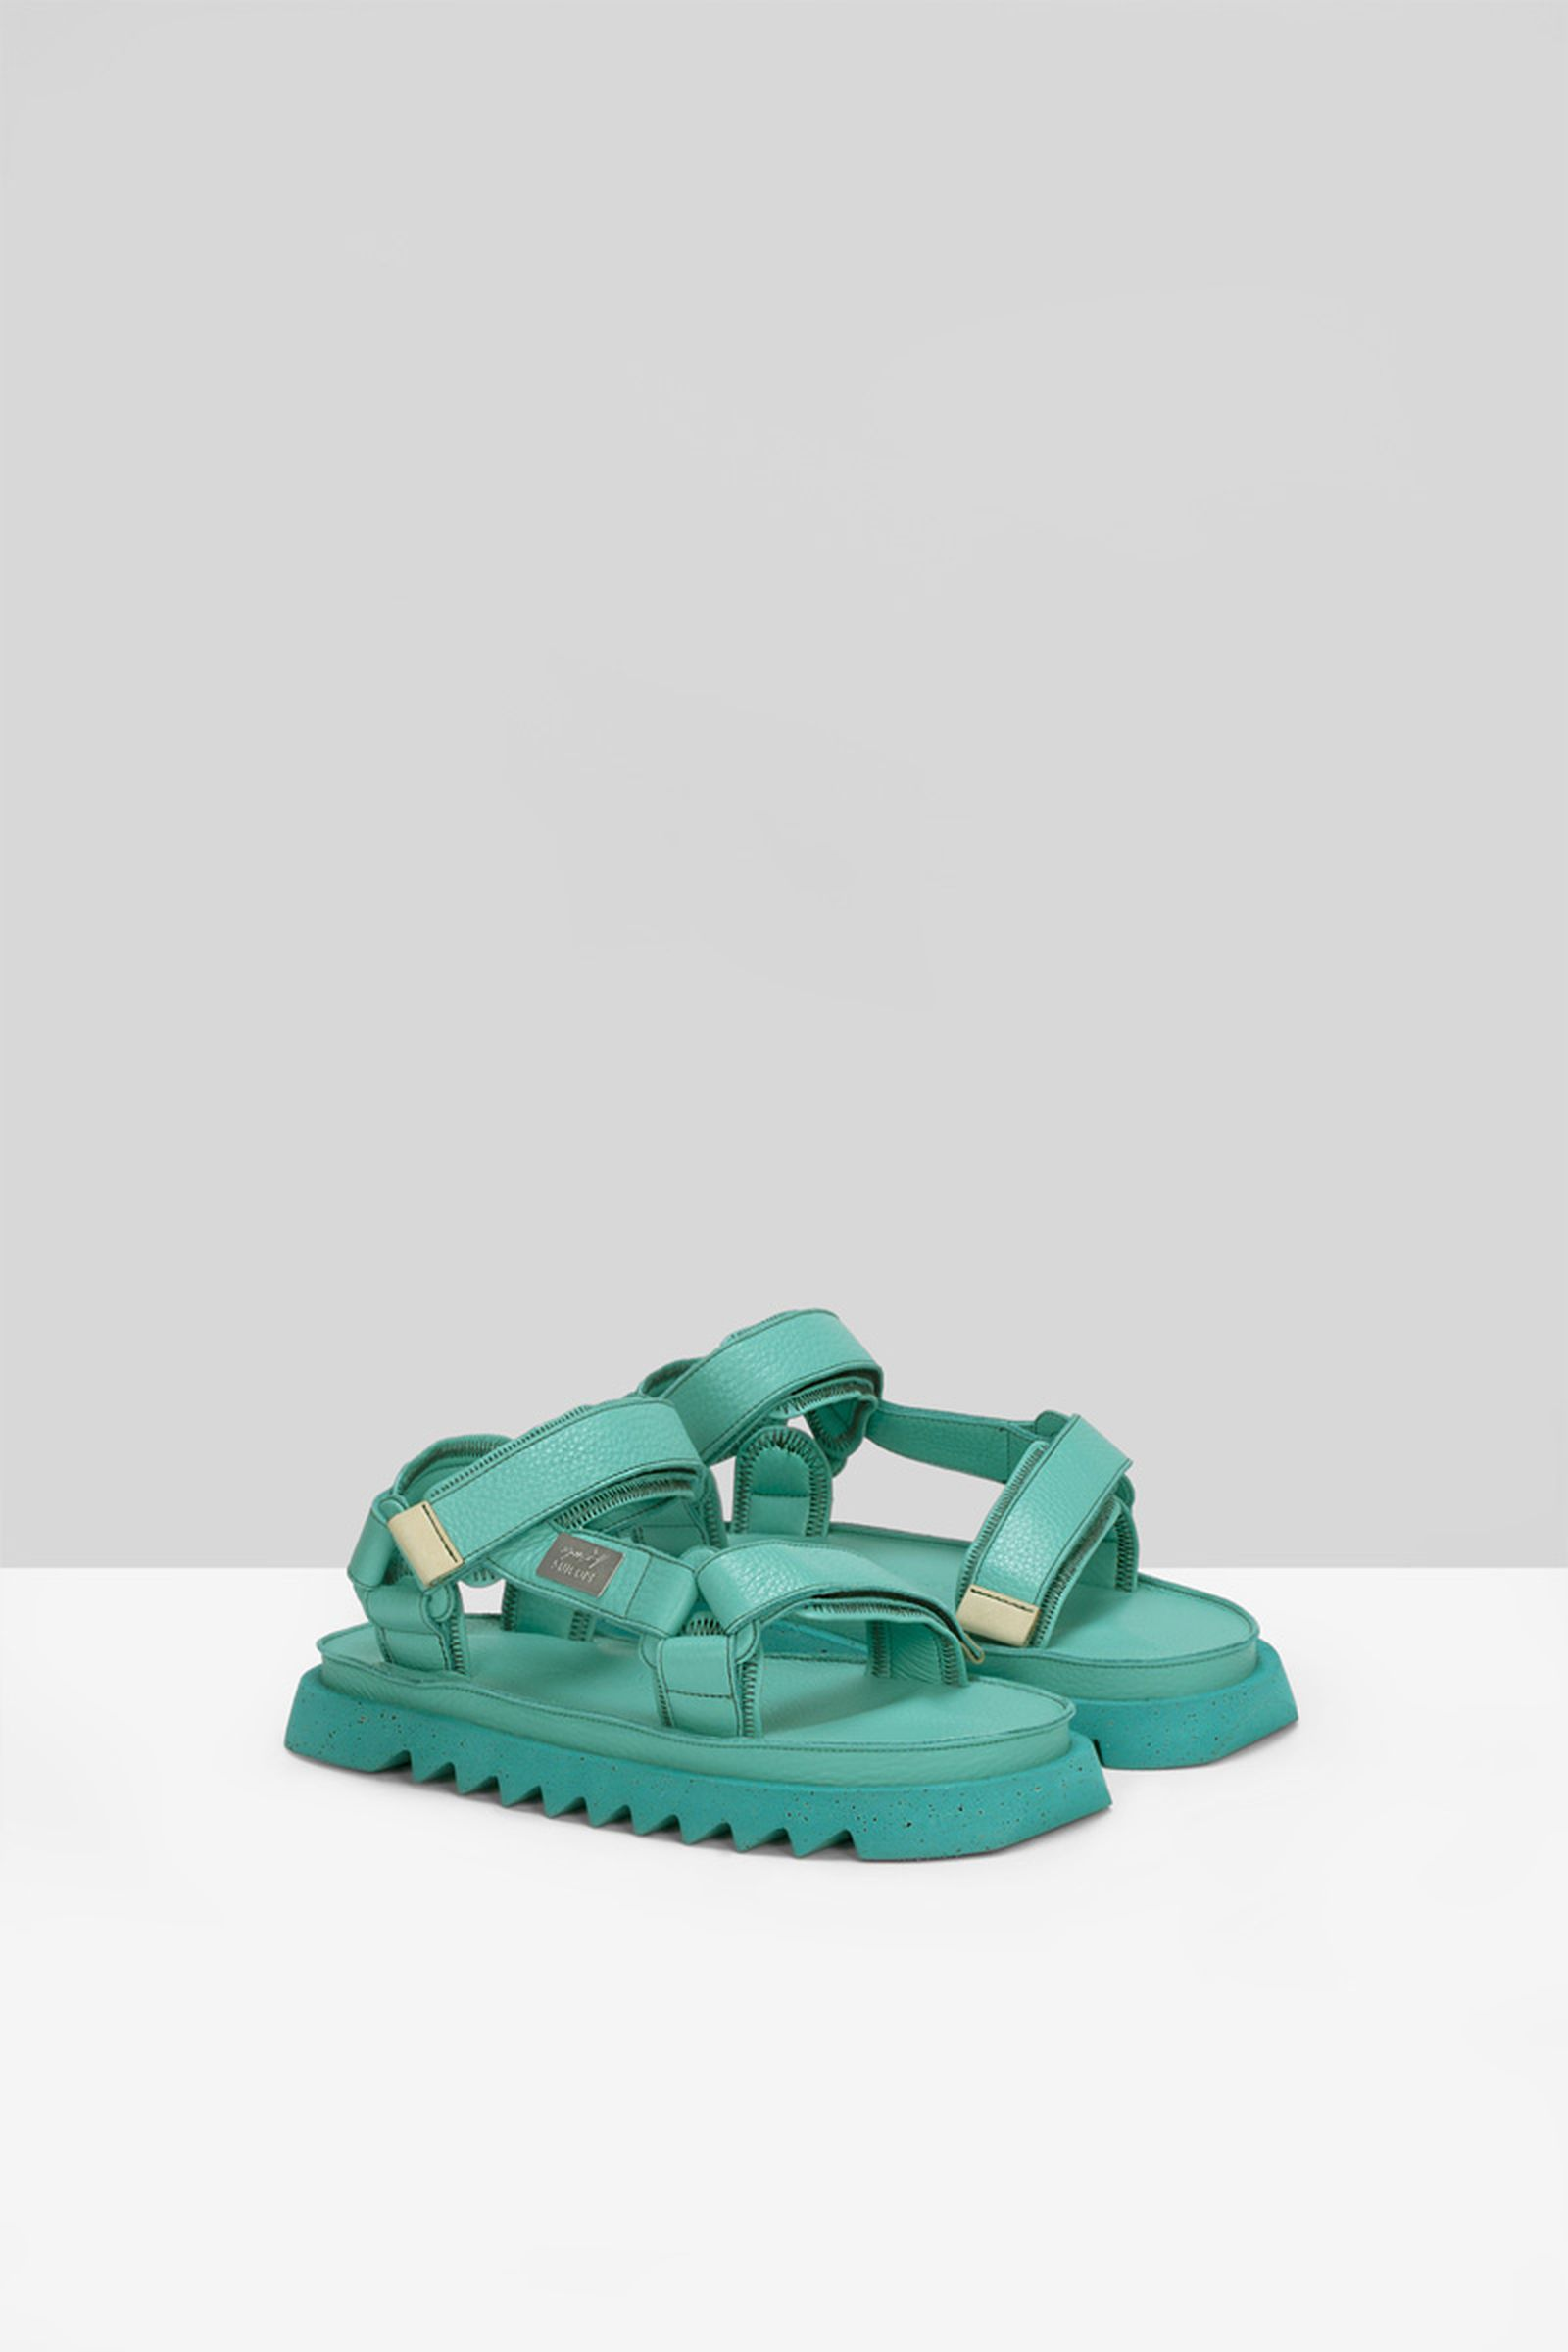 marsell-suicoke-ss21-collection-release-date-price-14